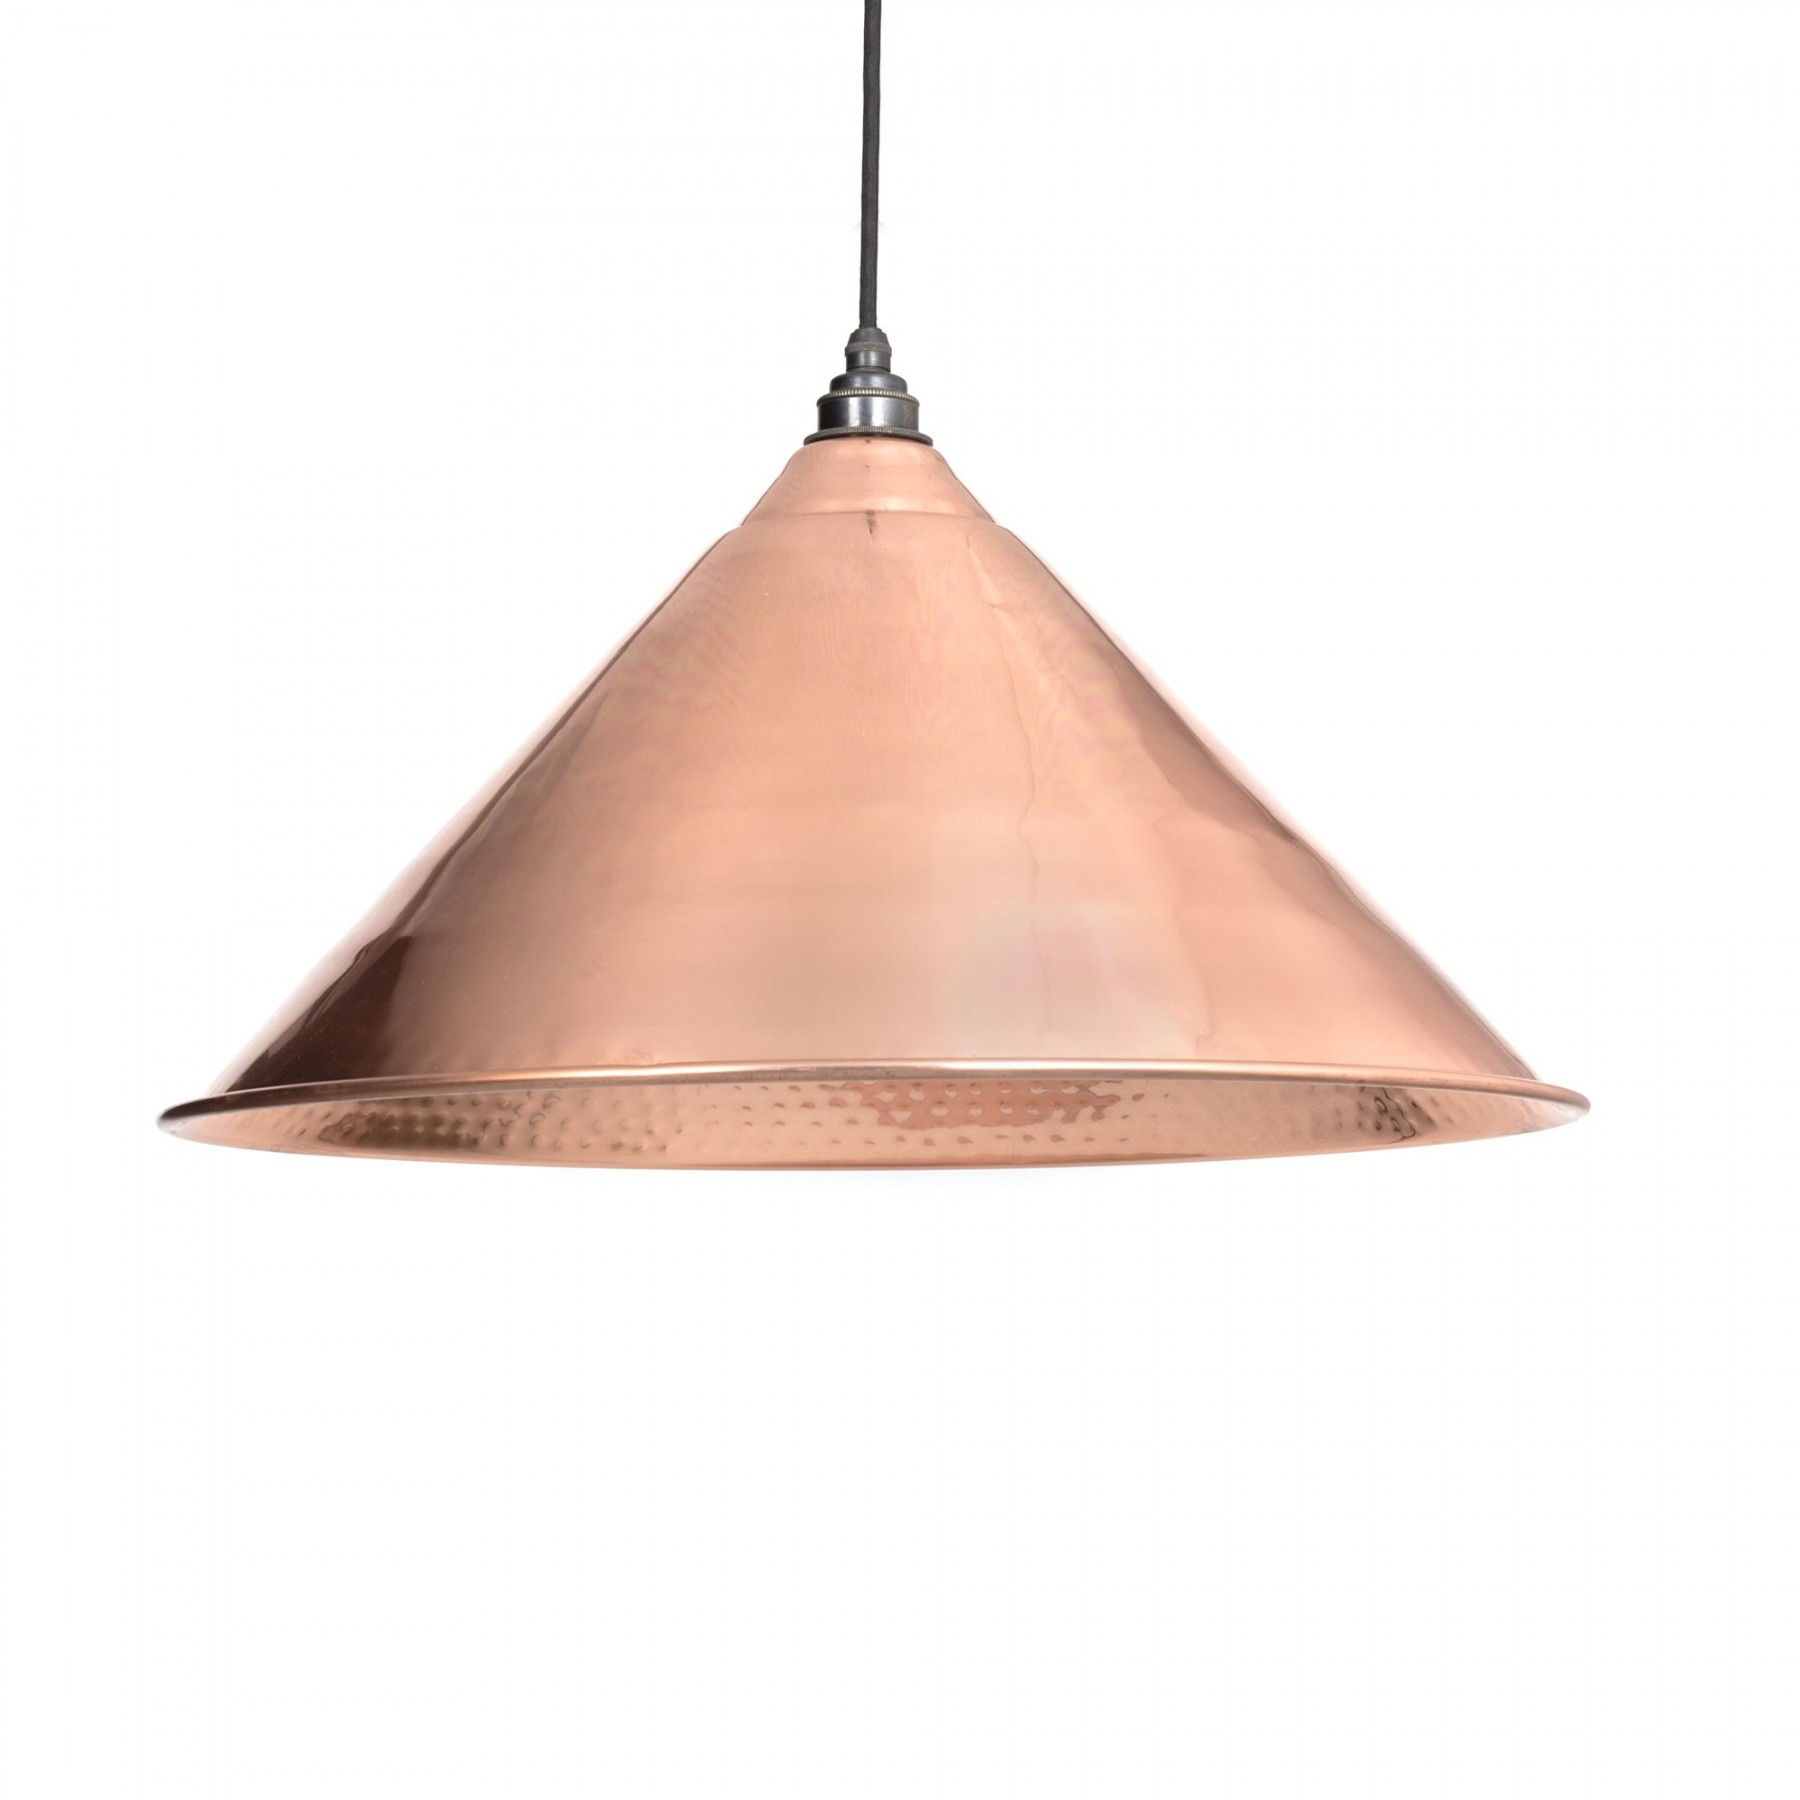 Hockley Pendants